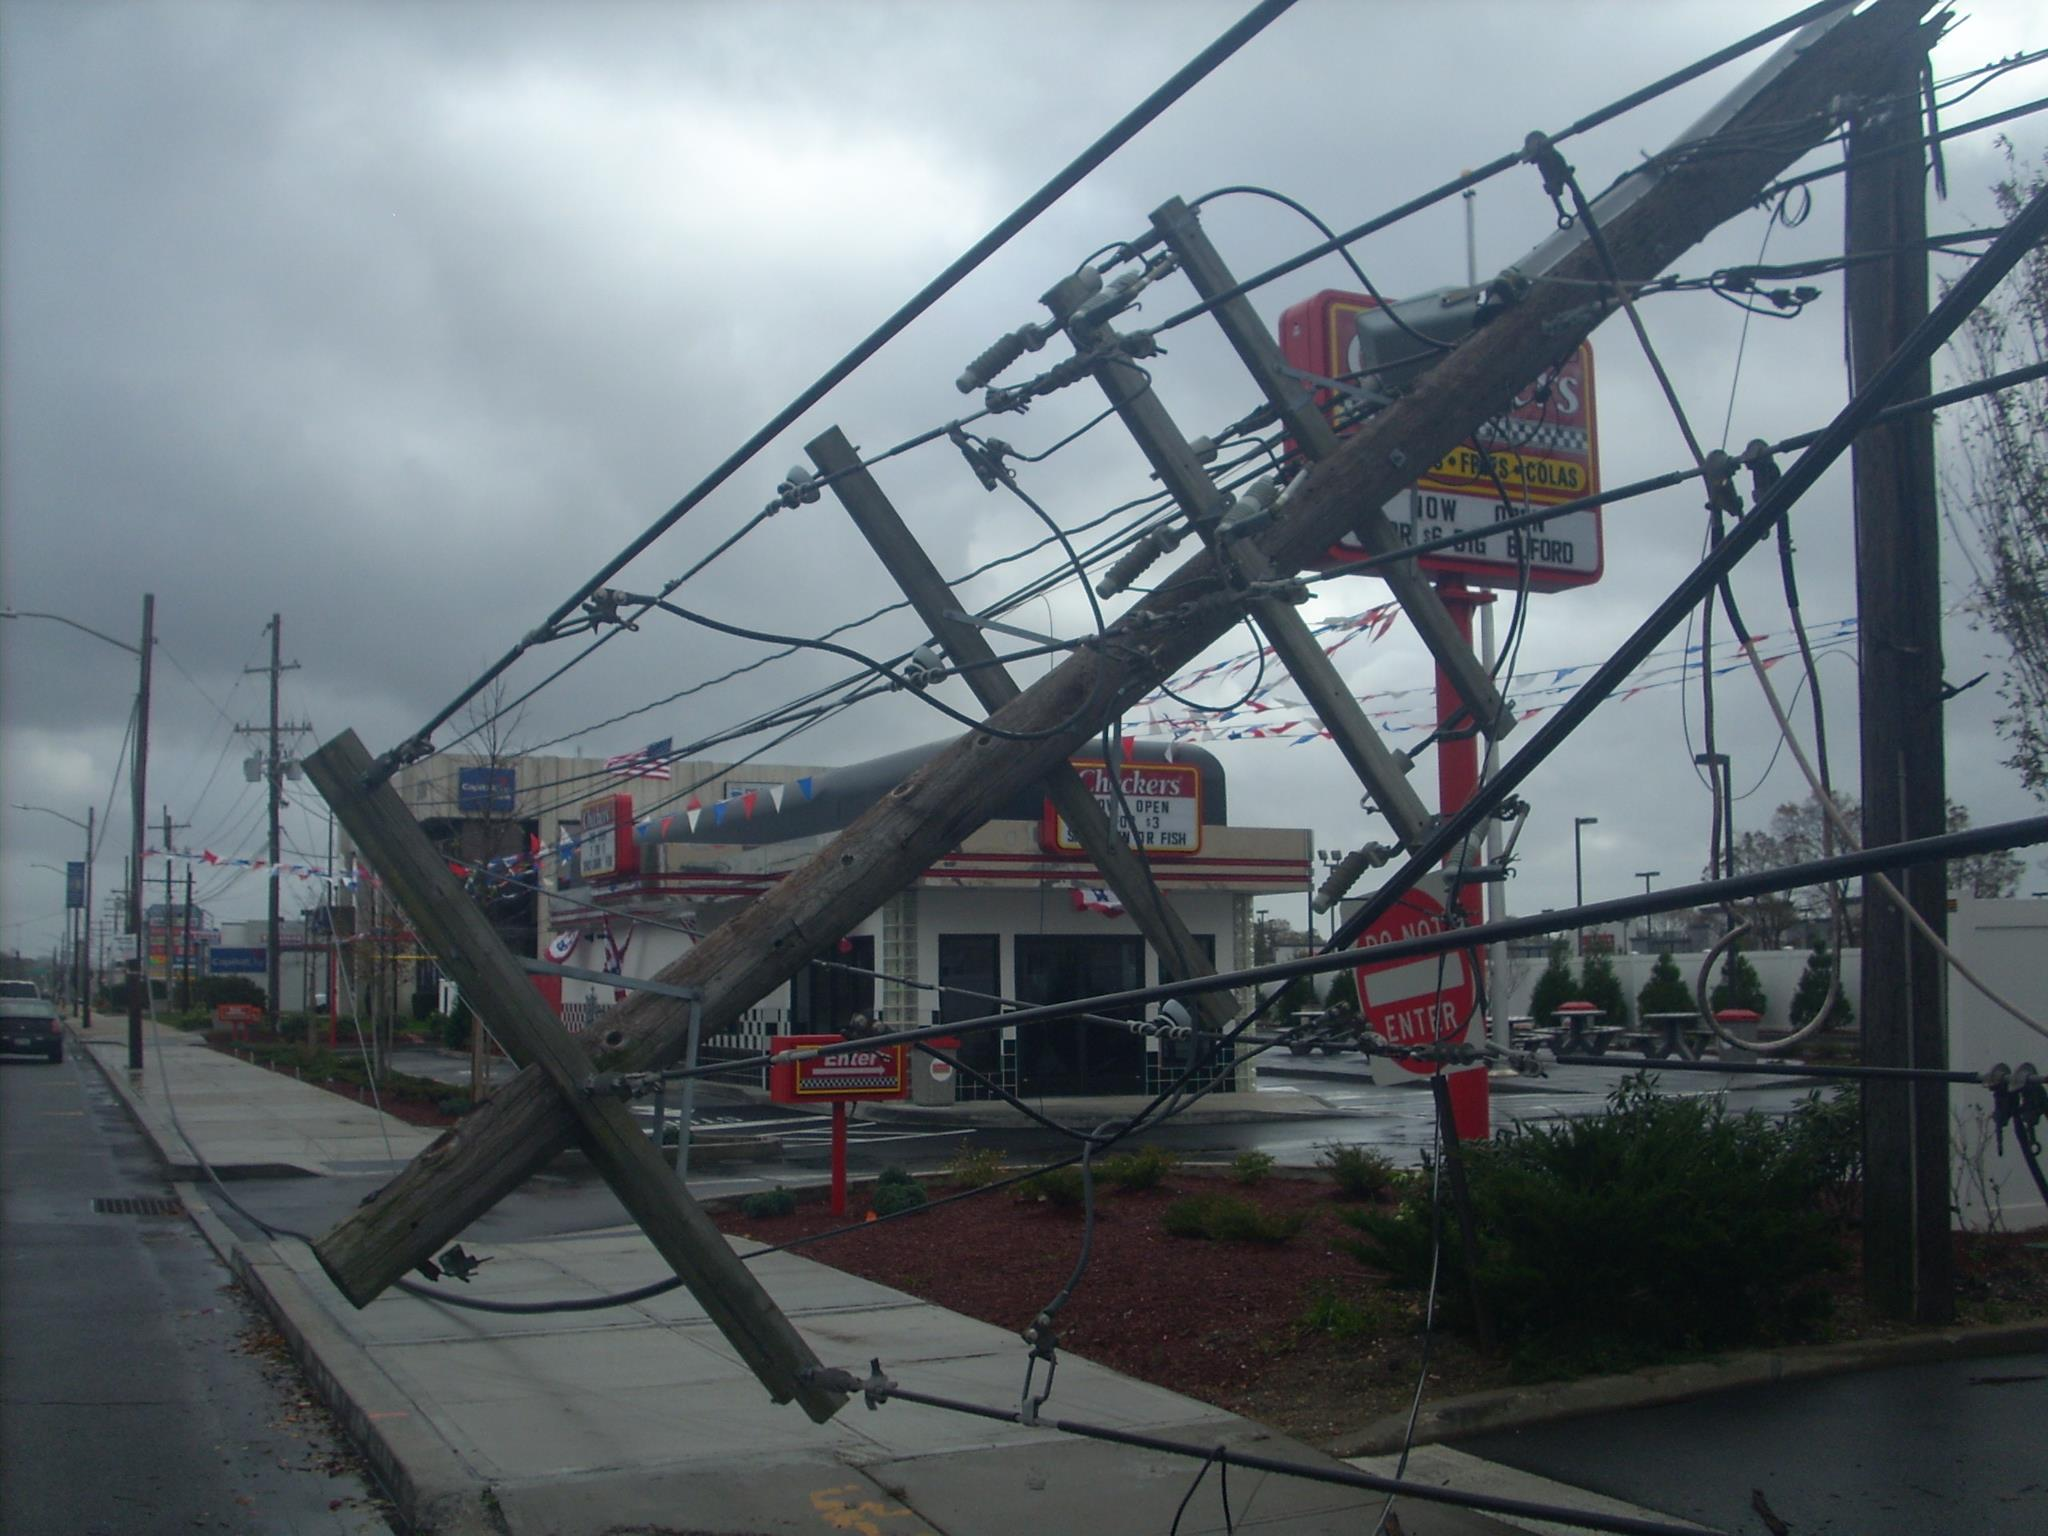 The scene outside Checkers Drive-In on Sunrise Highway in Massapequa following a visit from Hurricane Sandy. (Christopher Twarowski/Long Island Press)